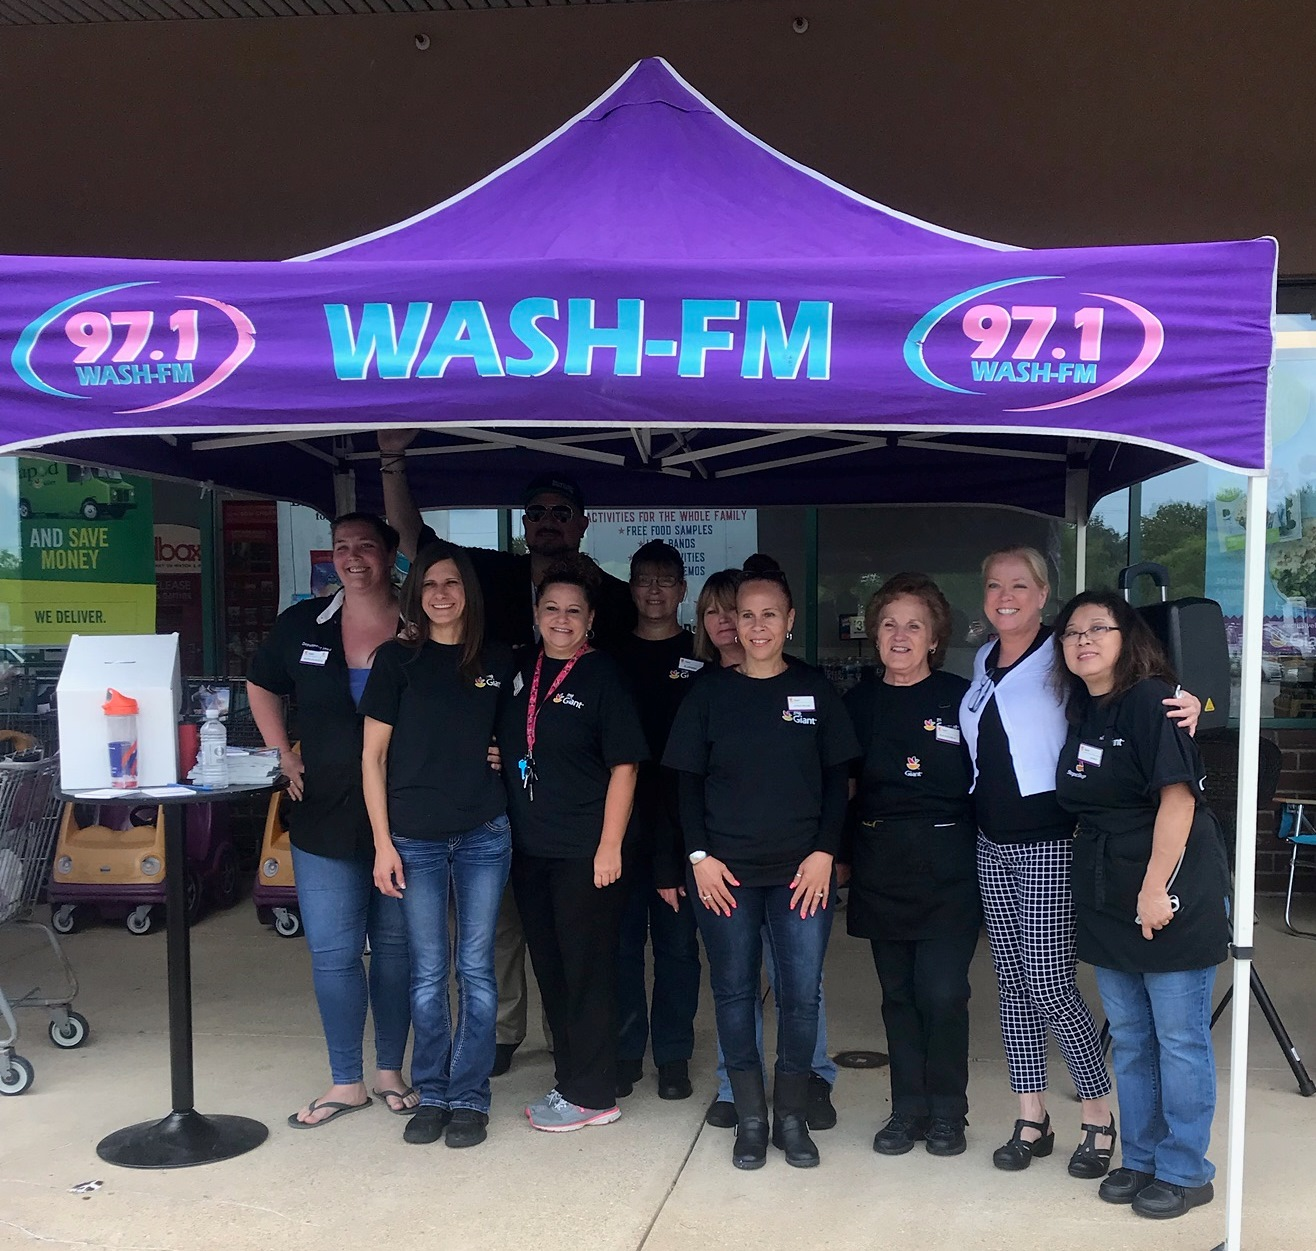 Local Radio Station 97.1 WASH-FM At Store #359 Promoting The BBQ Battle